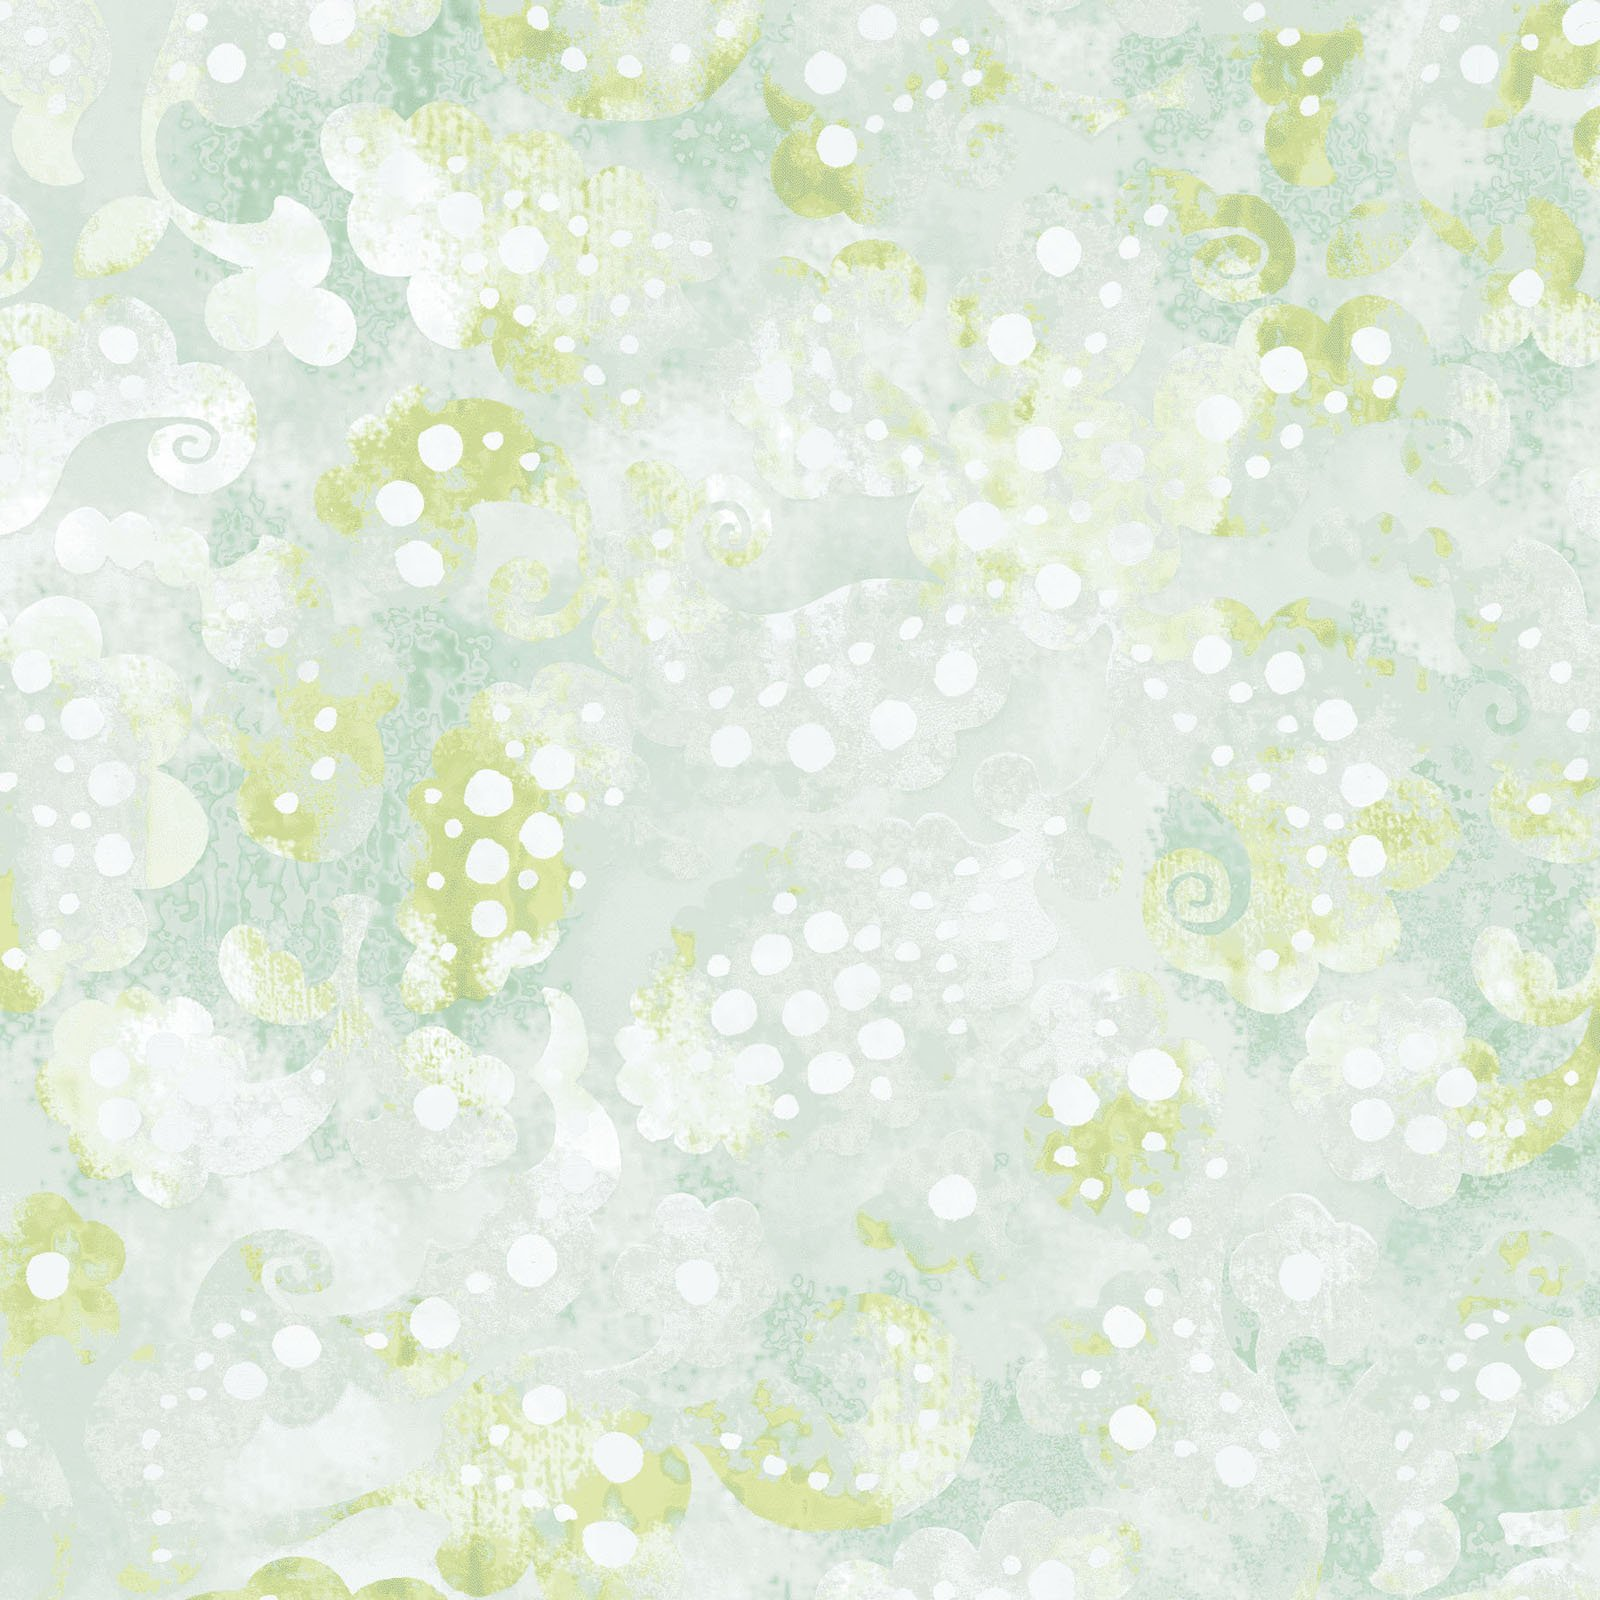 DADR-4358 G - DAY DREAMS 108 BY P&B TEXTILES GREEN - ARRIVING IN FEBRUARY 2021